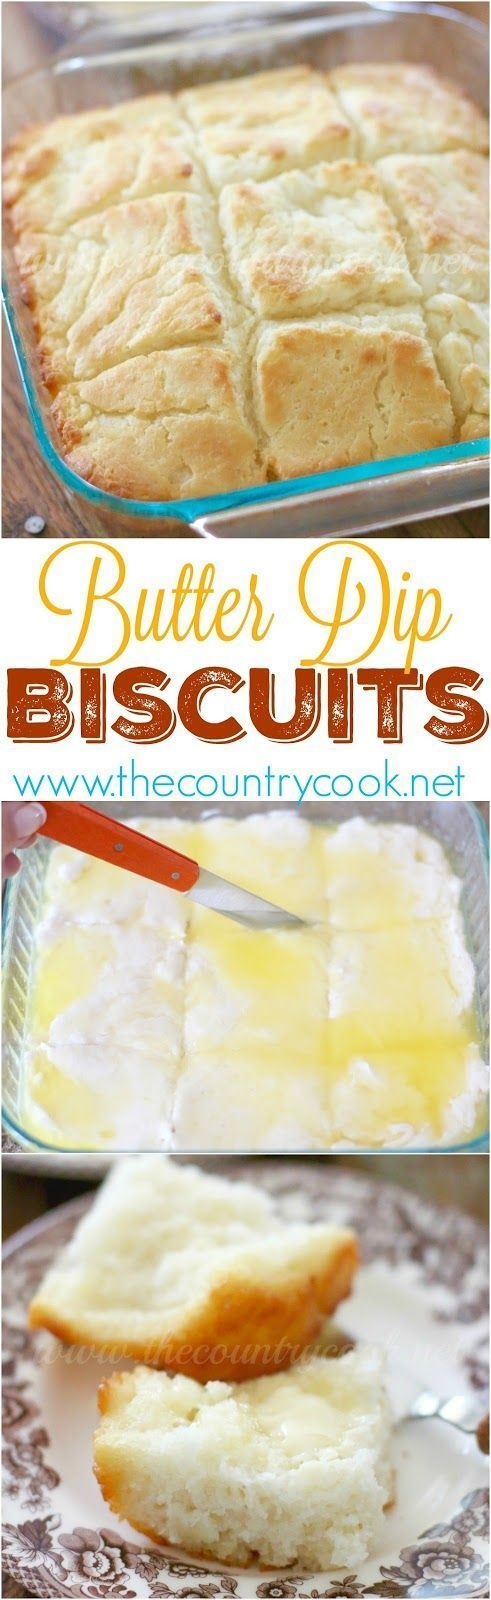 Butter Dip Buttermilk Biscuits Recipe from The Country Cook. So easy and so yummy! Best homemade biscuit ever! The Best Homemade Biscuits Recipes - Quick, Easy and Delicious Bread Sides for Breakfast, Brunch, Lunch and Family Dinner! #biscuits #biscuitrecipes #homemdebiscuits #easybiscuits #rolls #homemadebreadsides #bread #breakfastrecipes #comfortfood